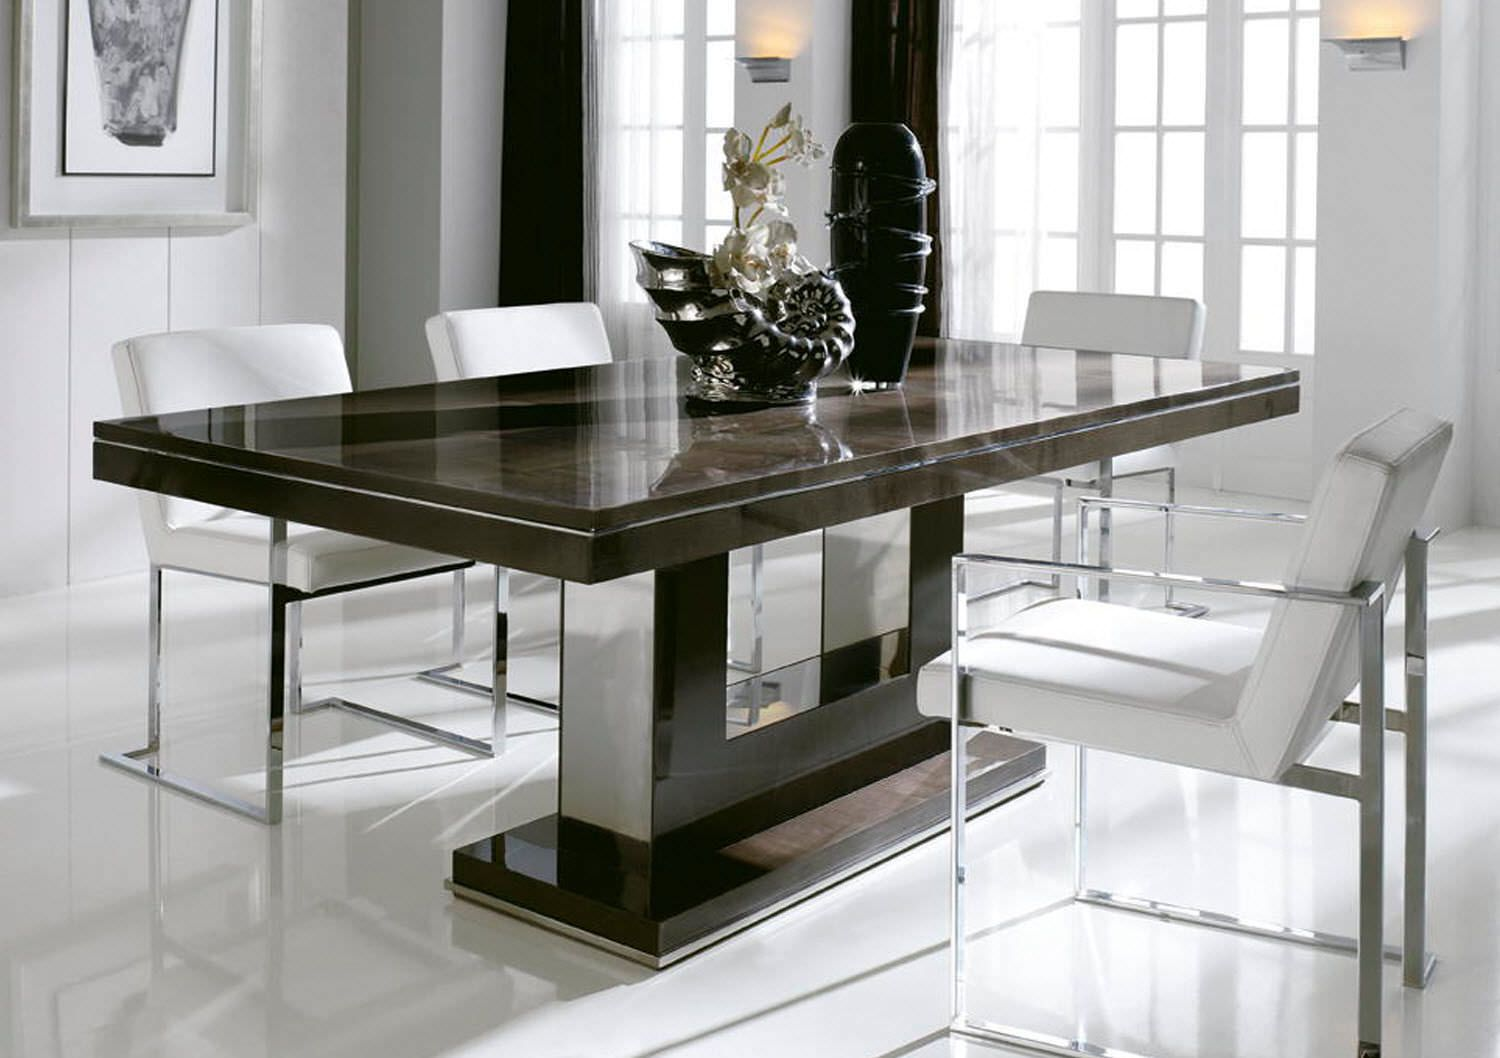 Interesting modern dining table dining room pinterest marble top dining table modern - Dining table design images ...